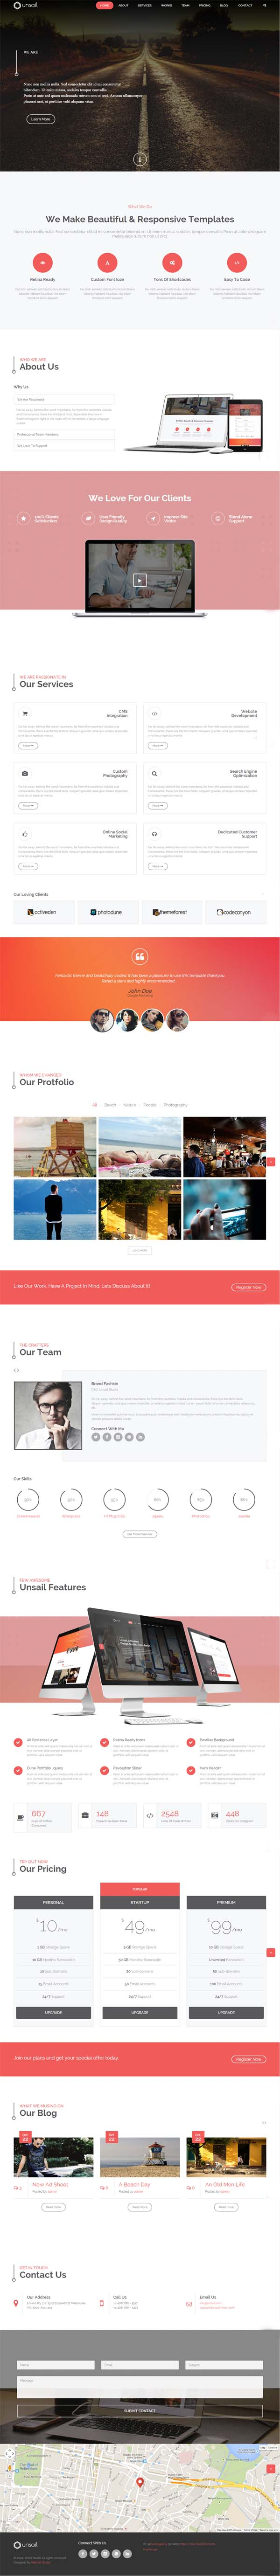 Unsail - One Page WordPress Parallax Theme